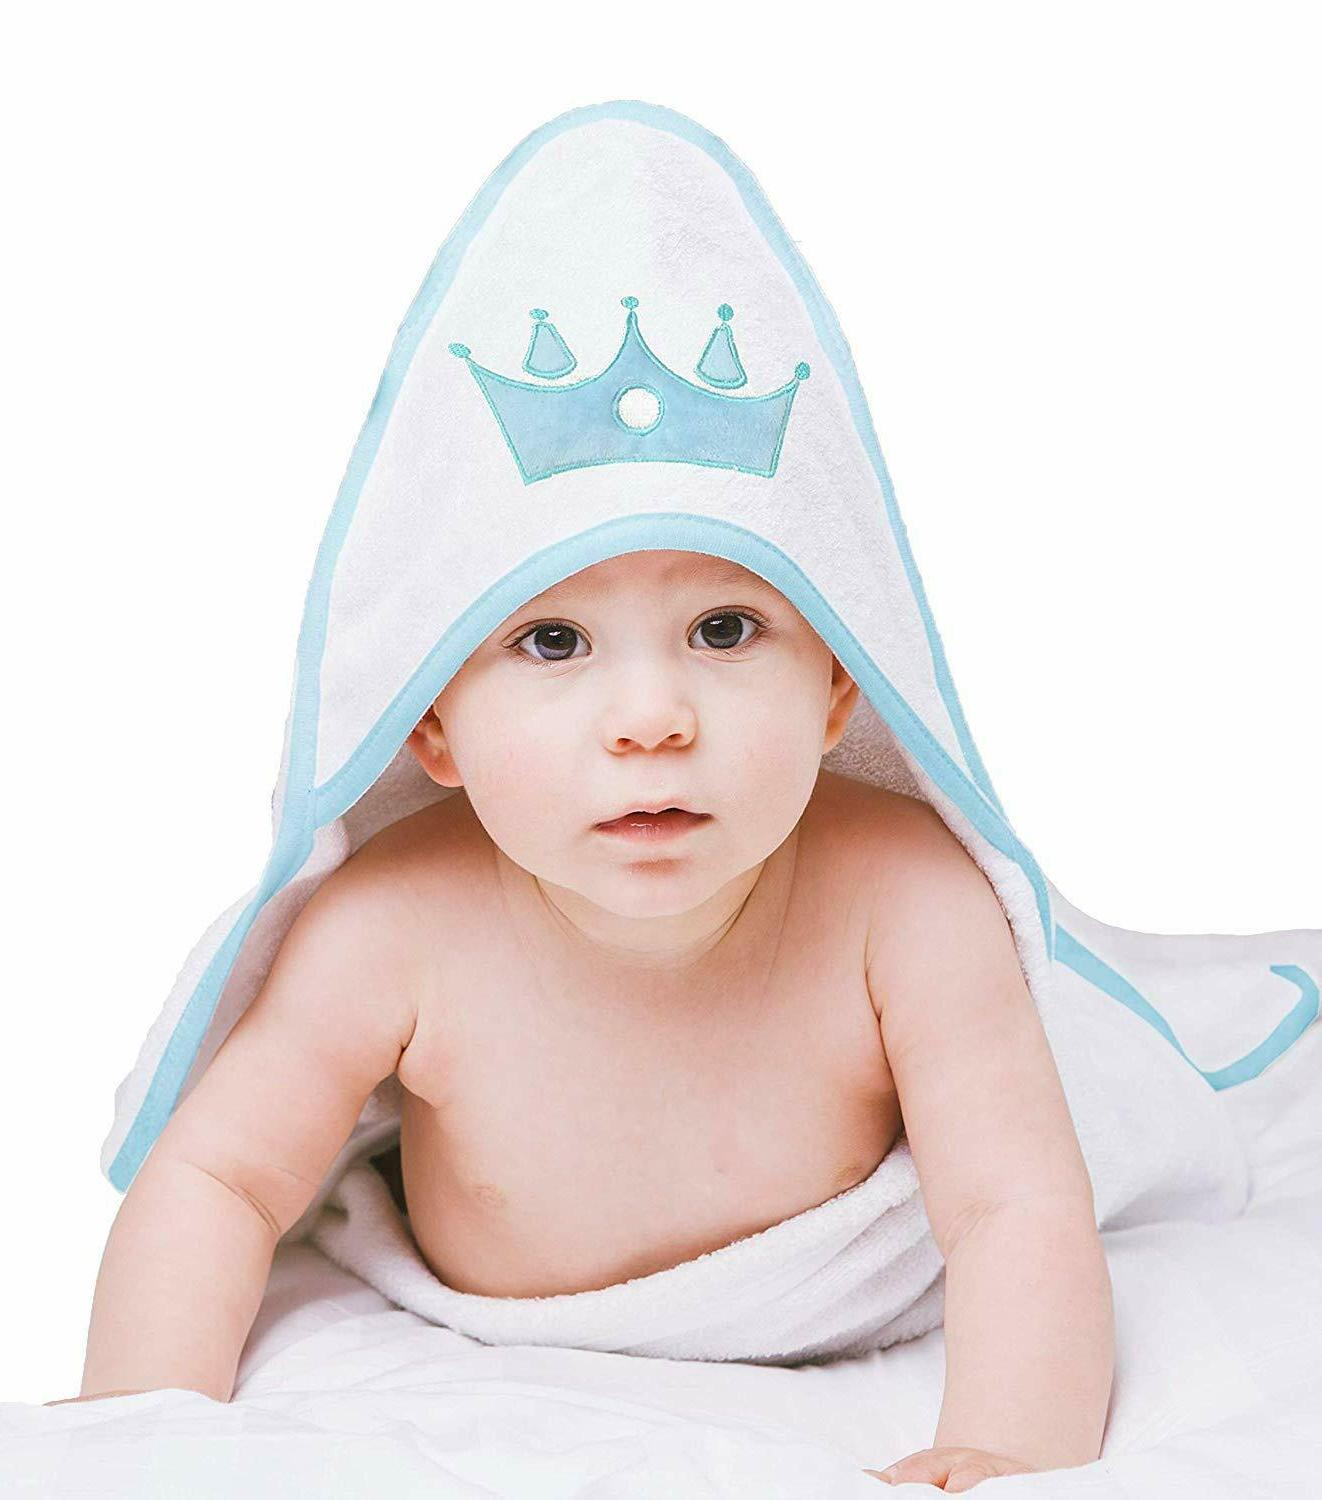 Baby Hooded with Bath Towel Infant